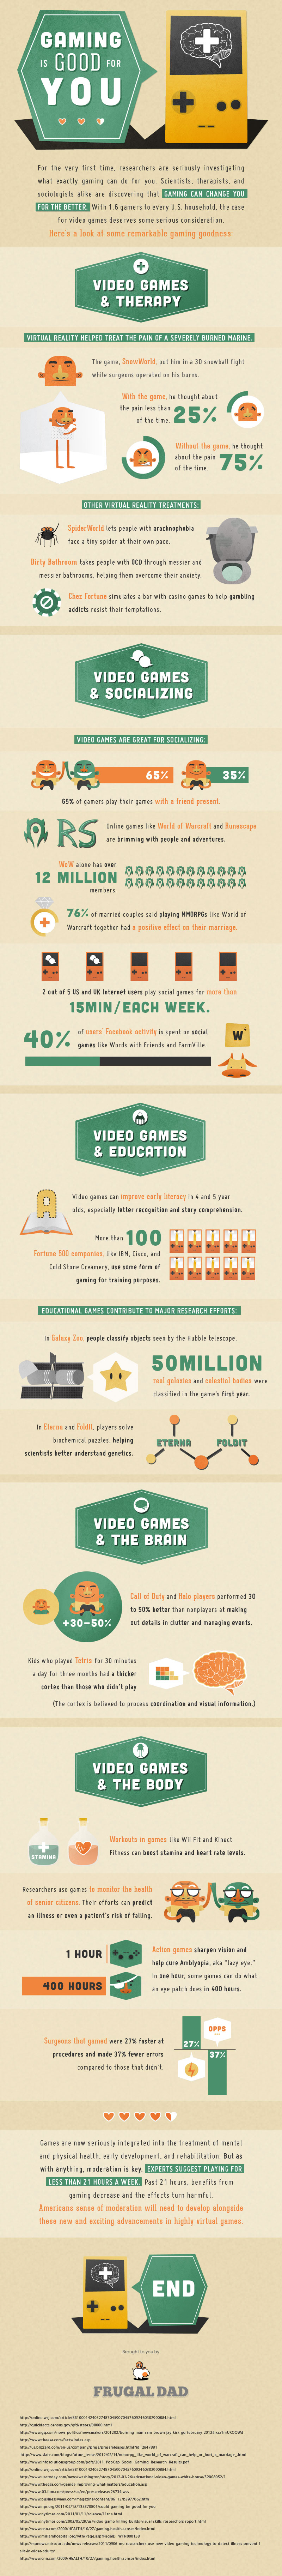 Gaming is Good for You | Infographic | Horrible Night